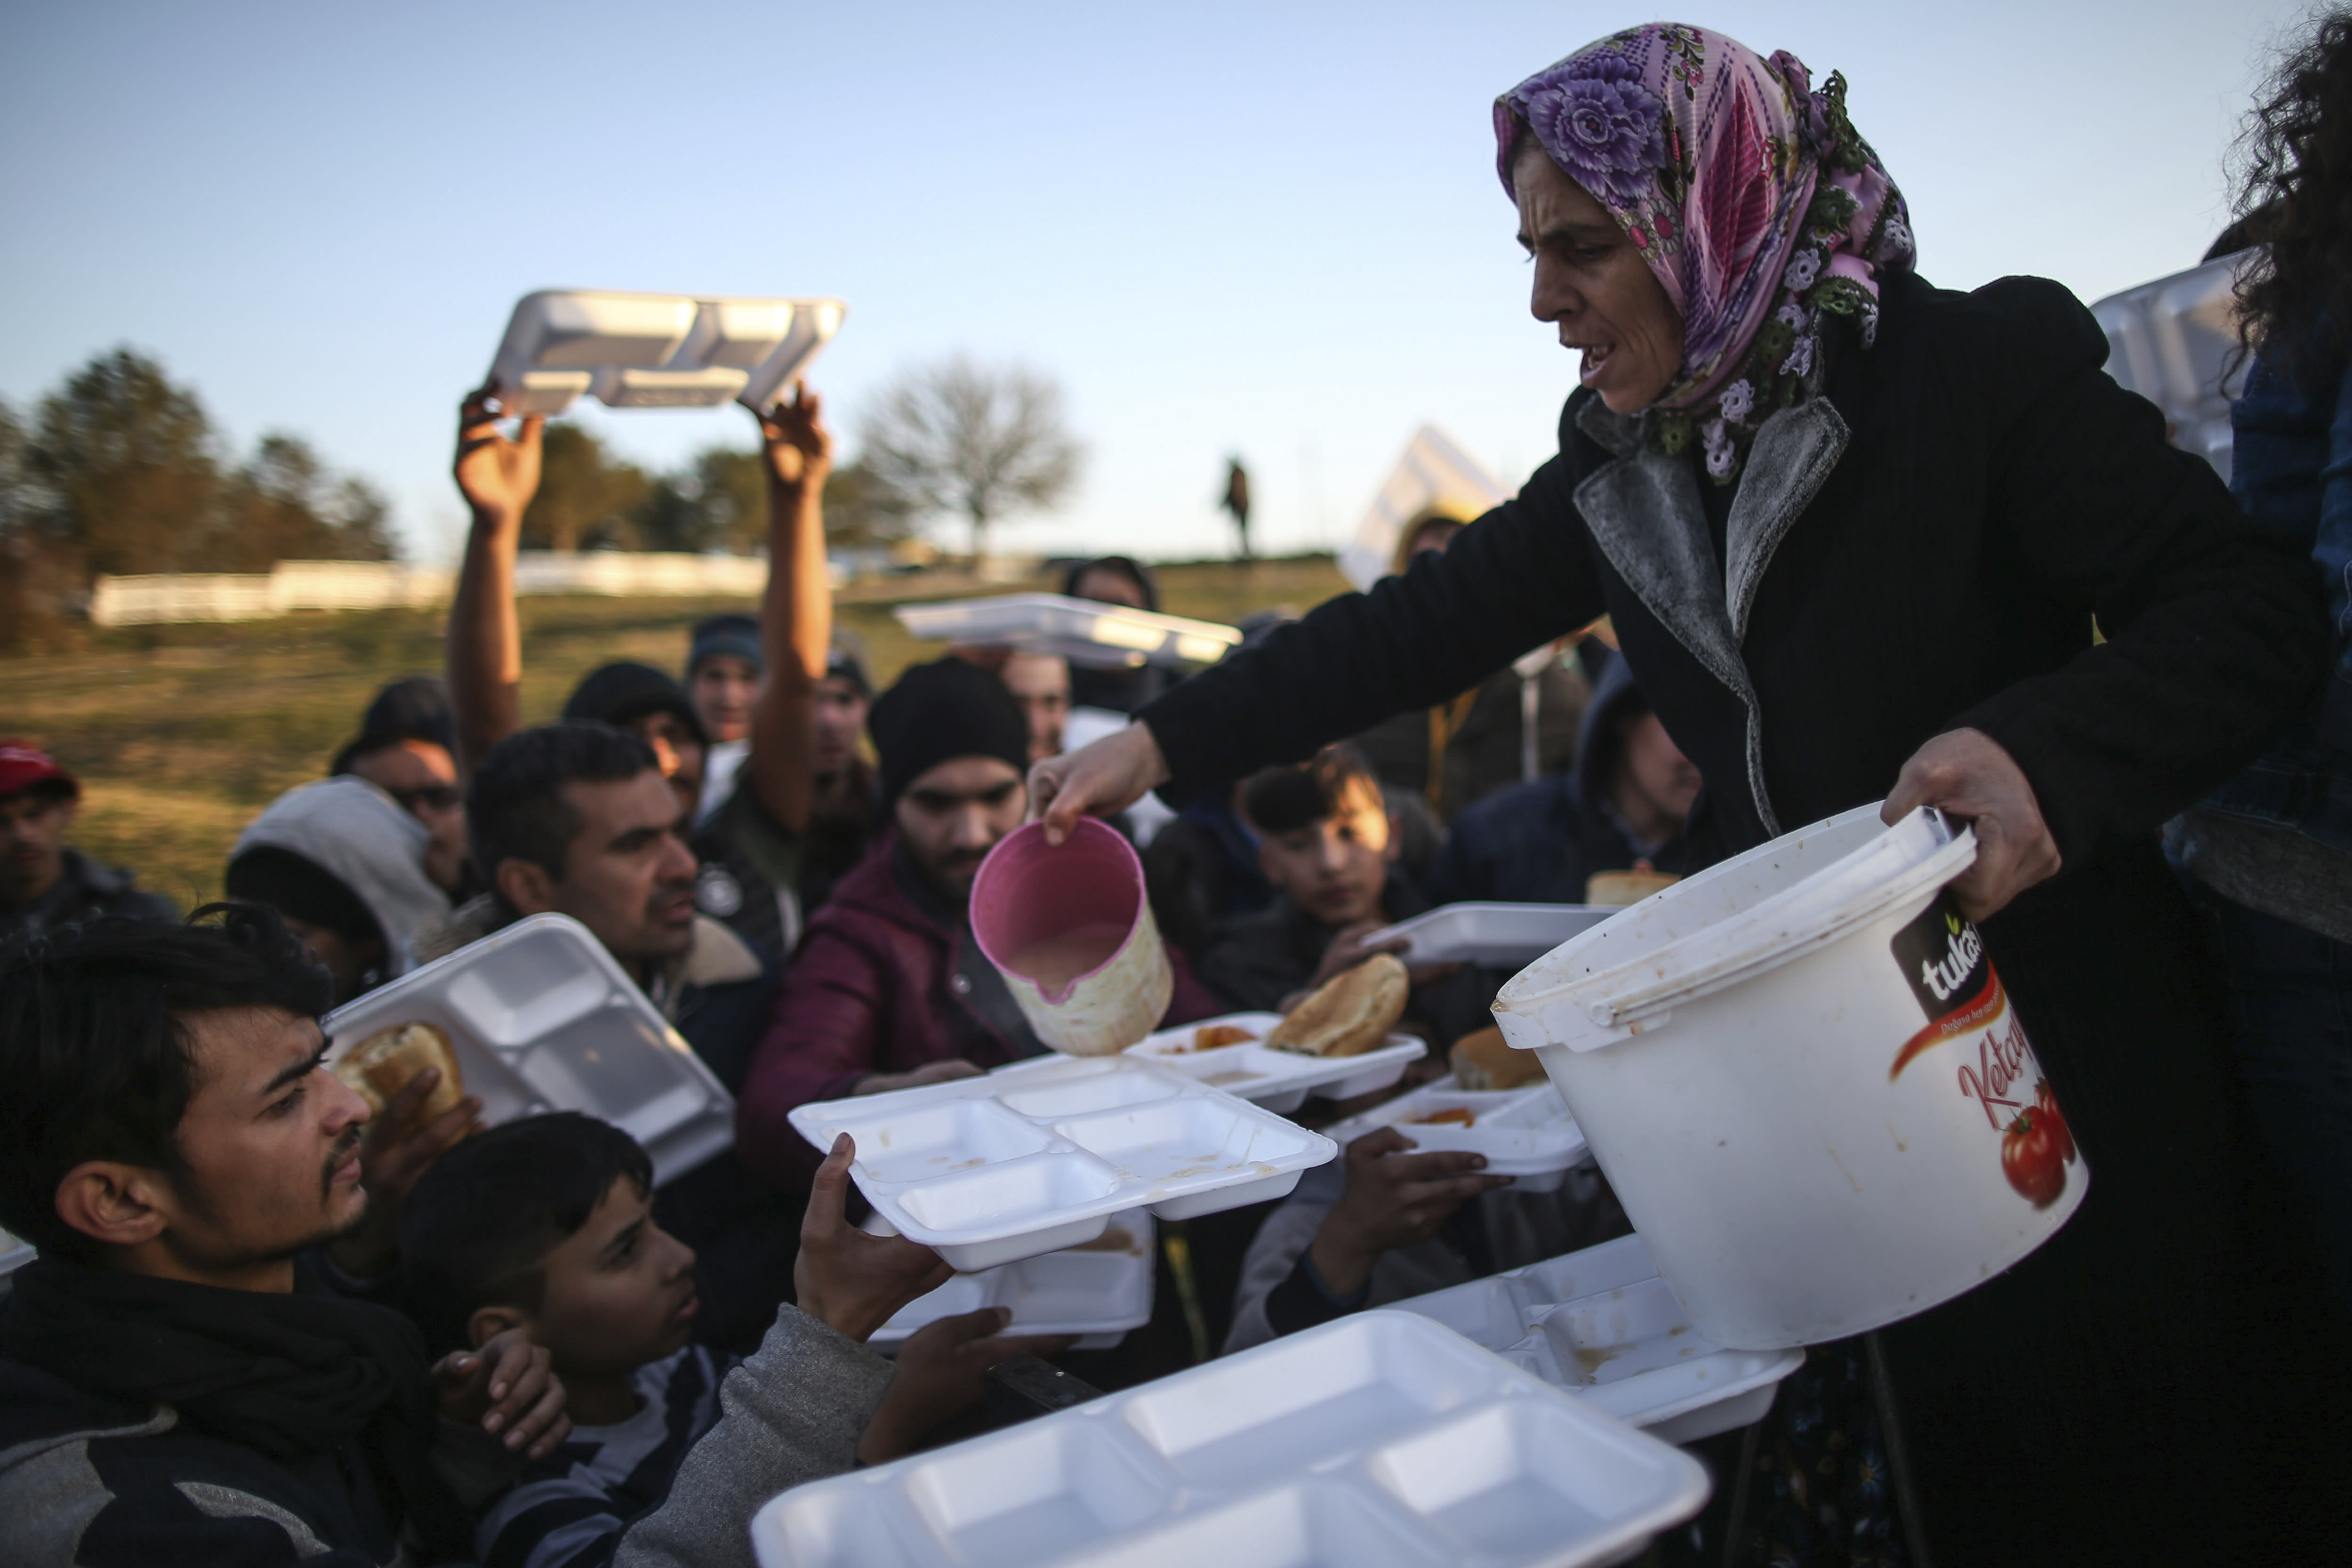 Migrants receive food as they gather in a field near Edirne, at the Turkish-Greek border on Monday, March 2, 2020. Thousands of migrants on Monday tried to find a way across the land border into Greece, which has made clear its borders will remain closed. Dozens managed to pass, either through border fences or across the river there. (AP Photo/Emrah Gurel)